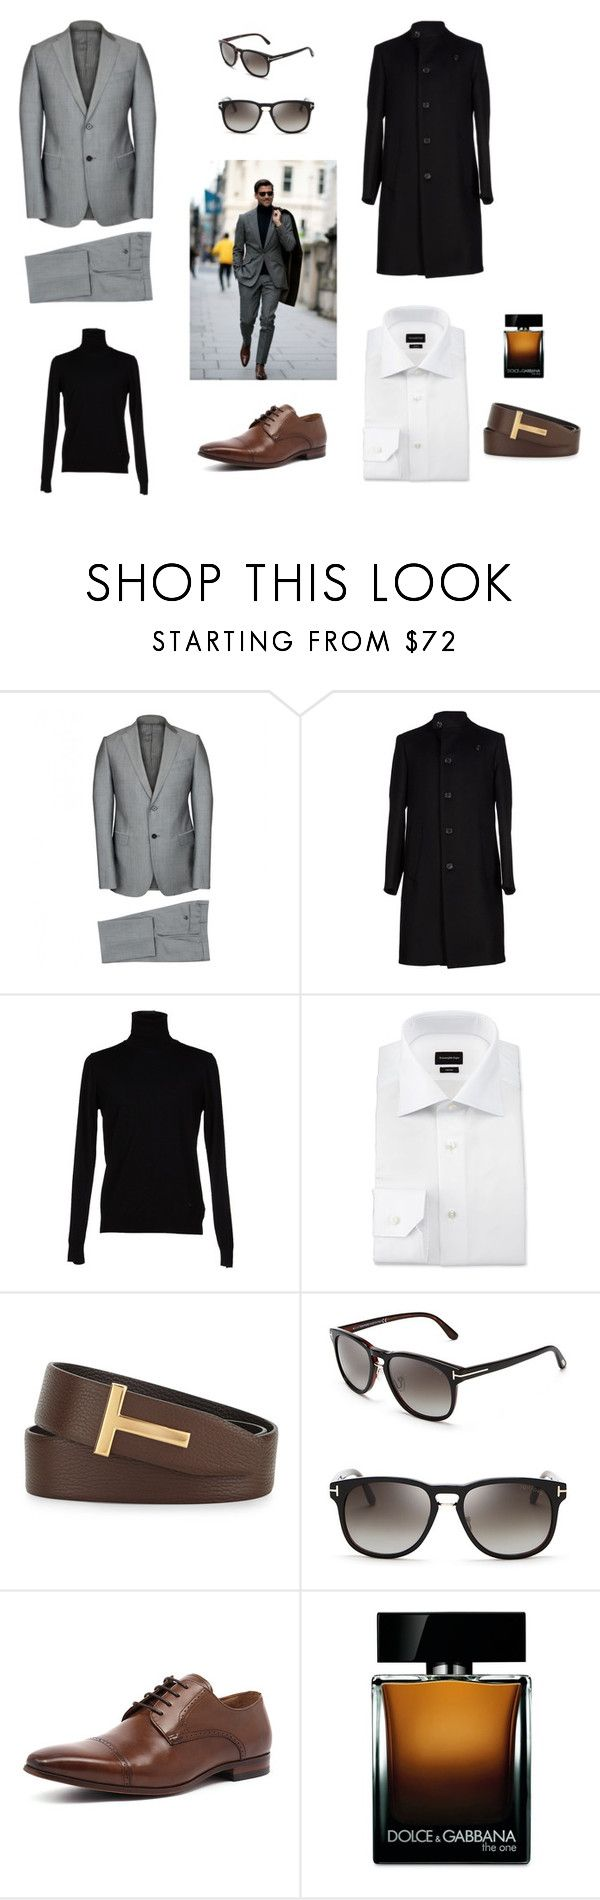 """Autaumn in London"" by dpintainha on Polyvore featuring Armani Collezioni, Ermenegildo Zegna, Tom Ford, Florsheim, Dolce&Gabbana, men's fashion and menswear"